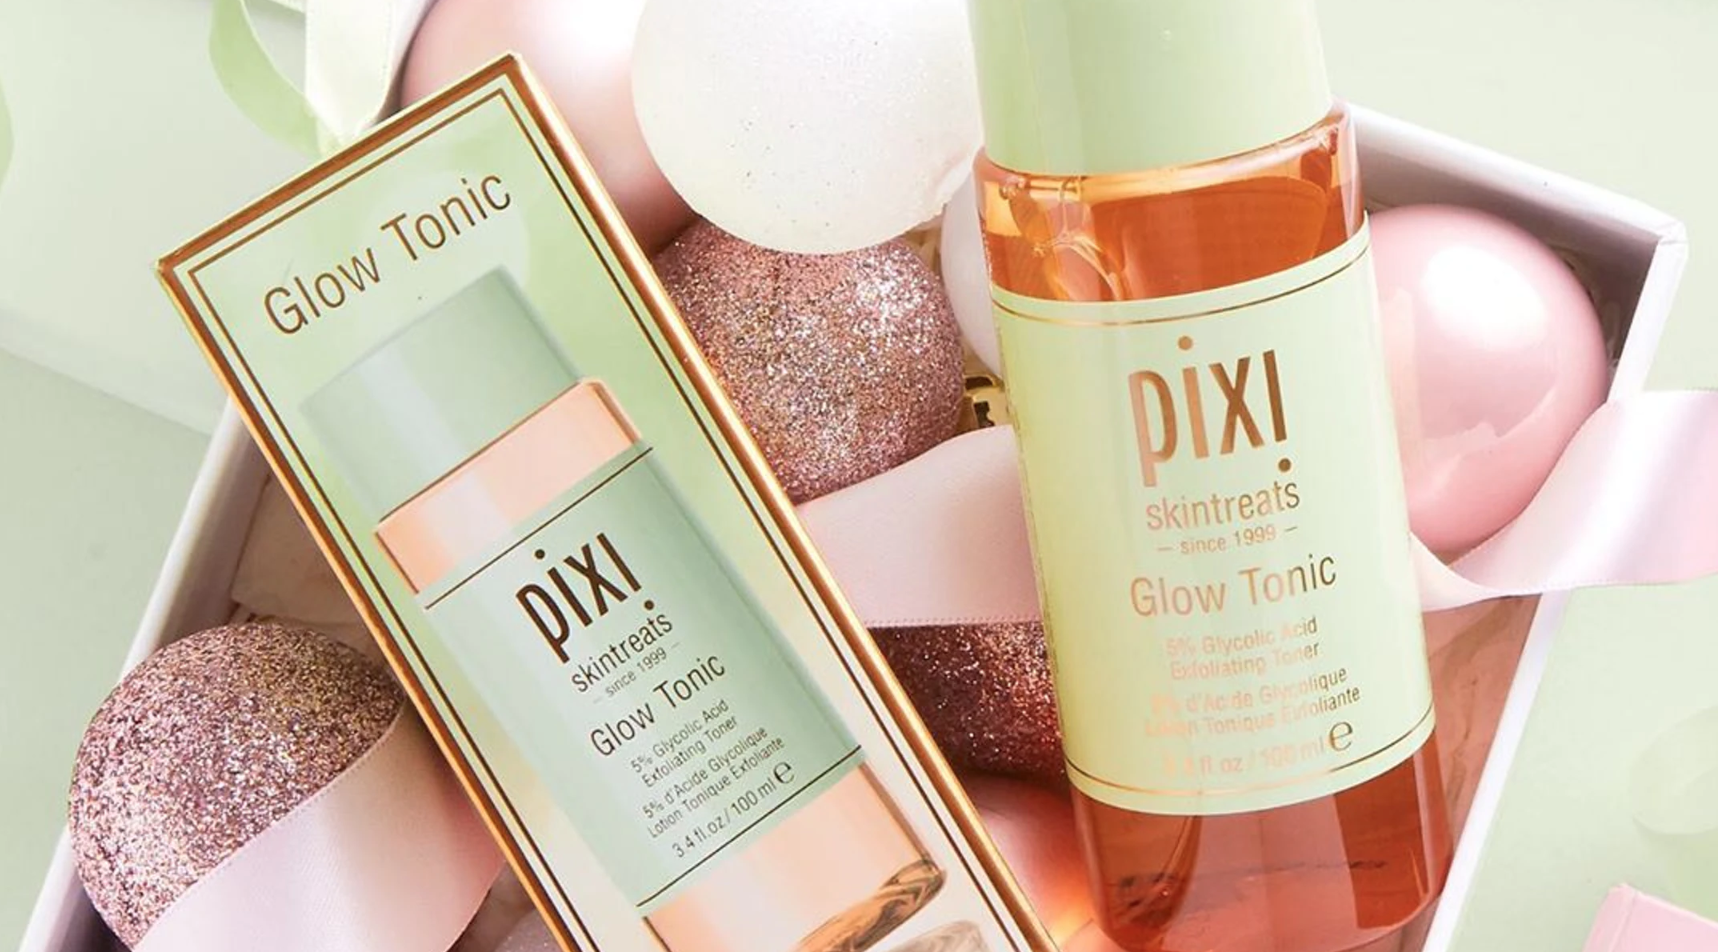 The holiday edition of Pixi Beauty's Glow Tonic.